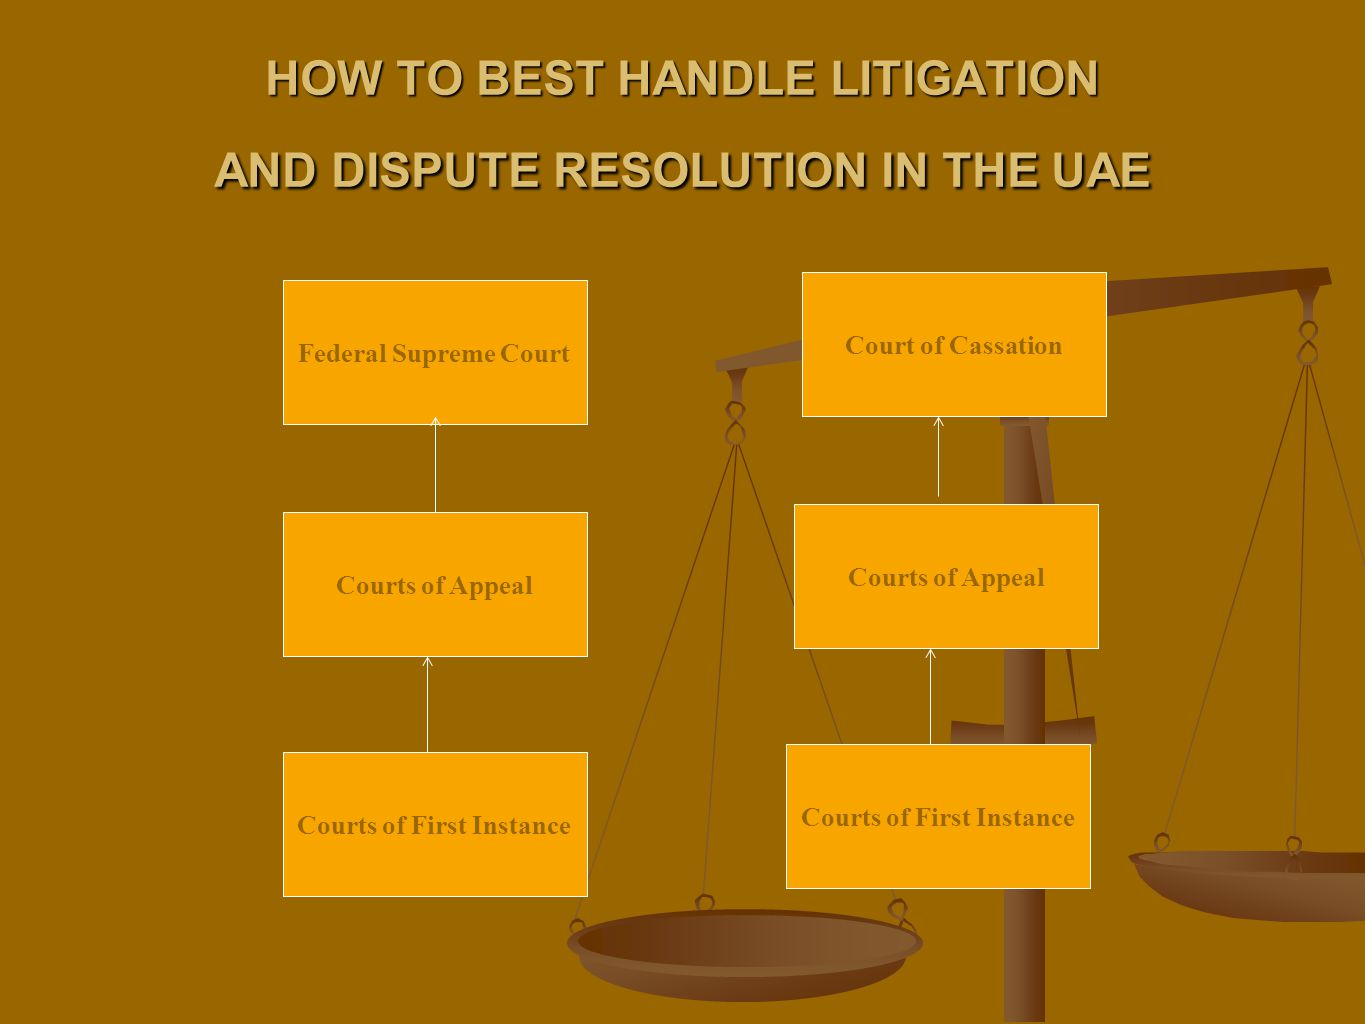 HOW TO BEST HANDLE LITIGATION AND DISPUTE RESOLUTION IN THE UAE Courts of First Instance Federal Supreme Court Courts of Appeal Court of Cassation Courts of Appeal Courts of First Instance